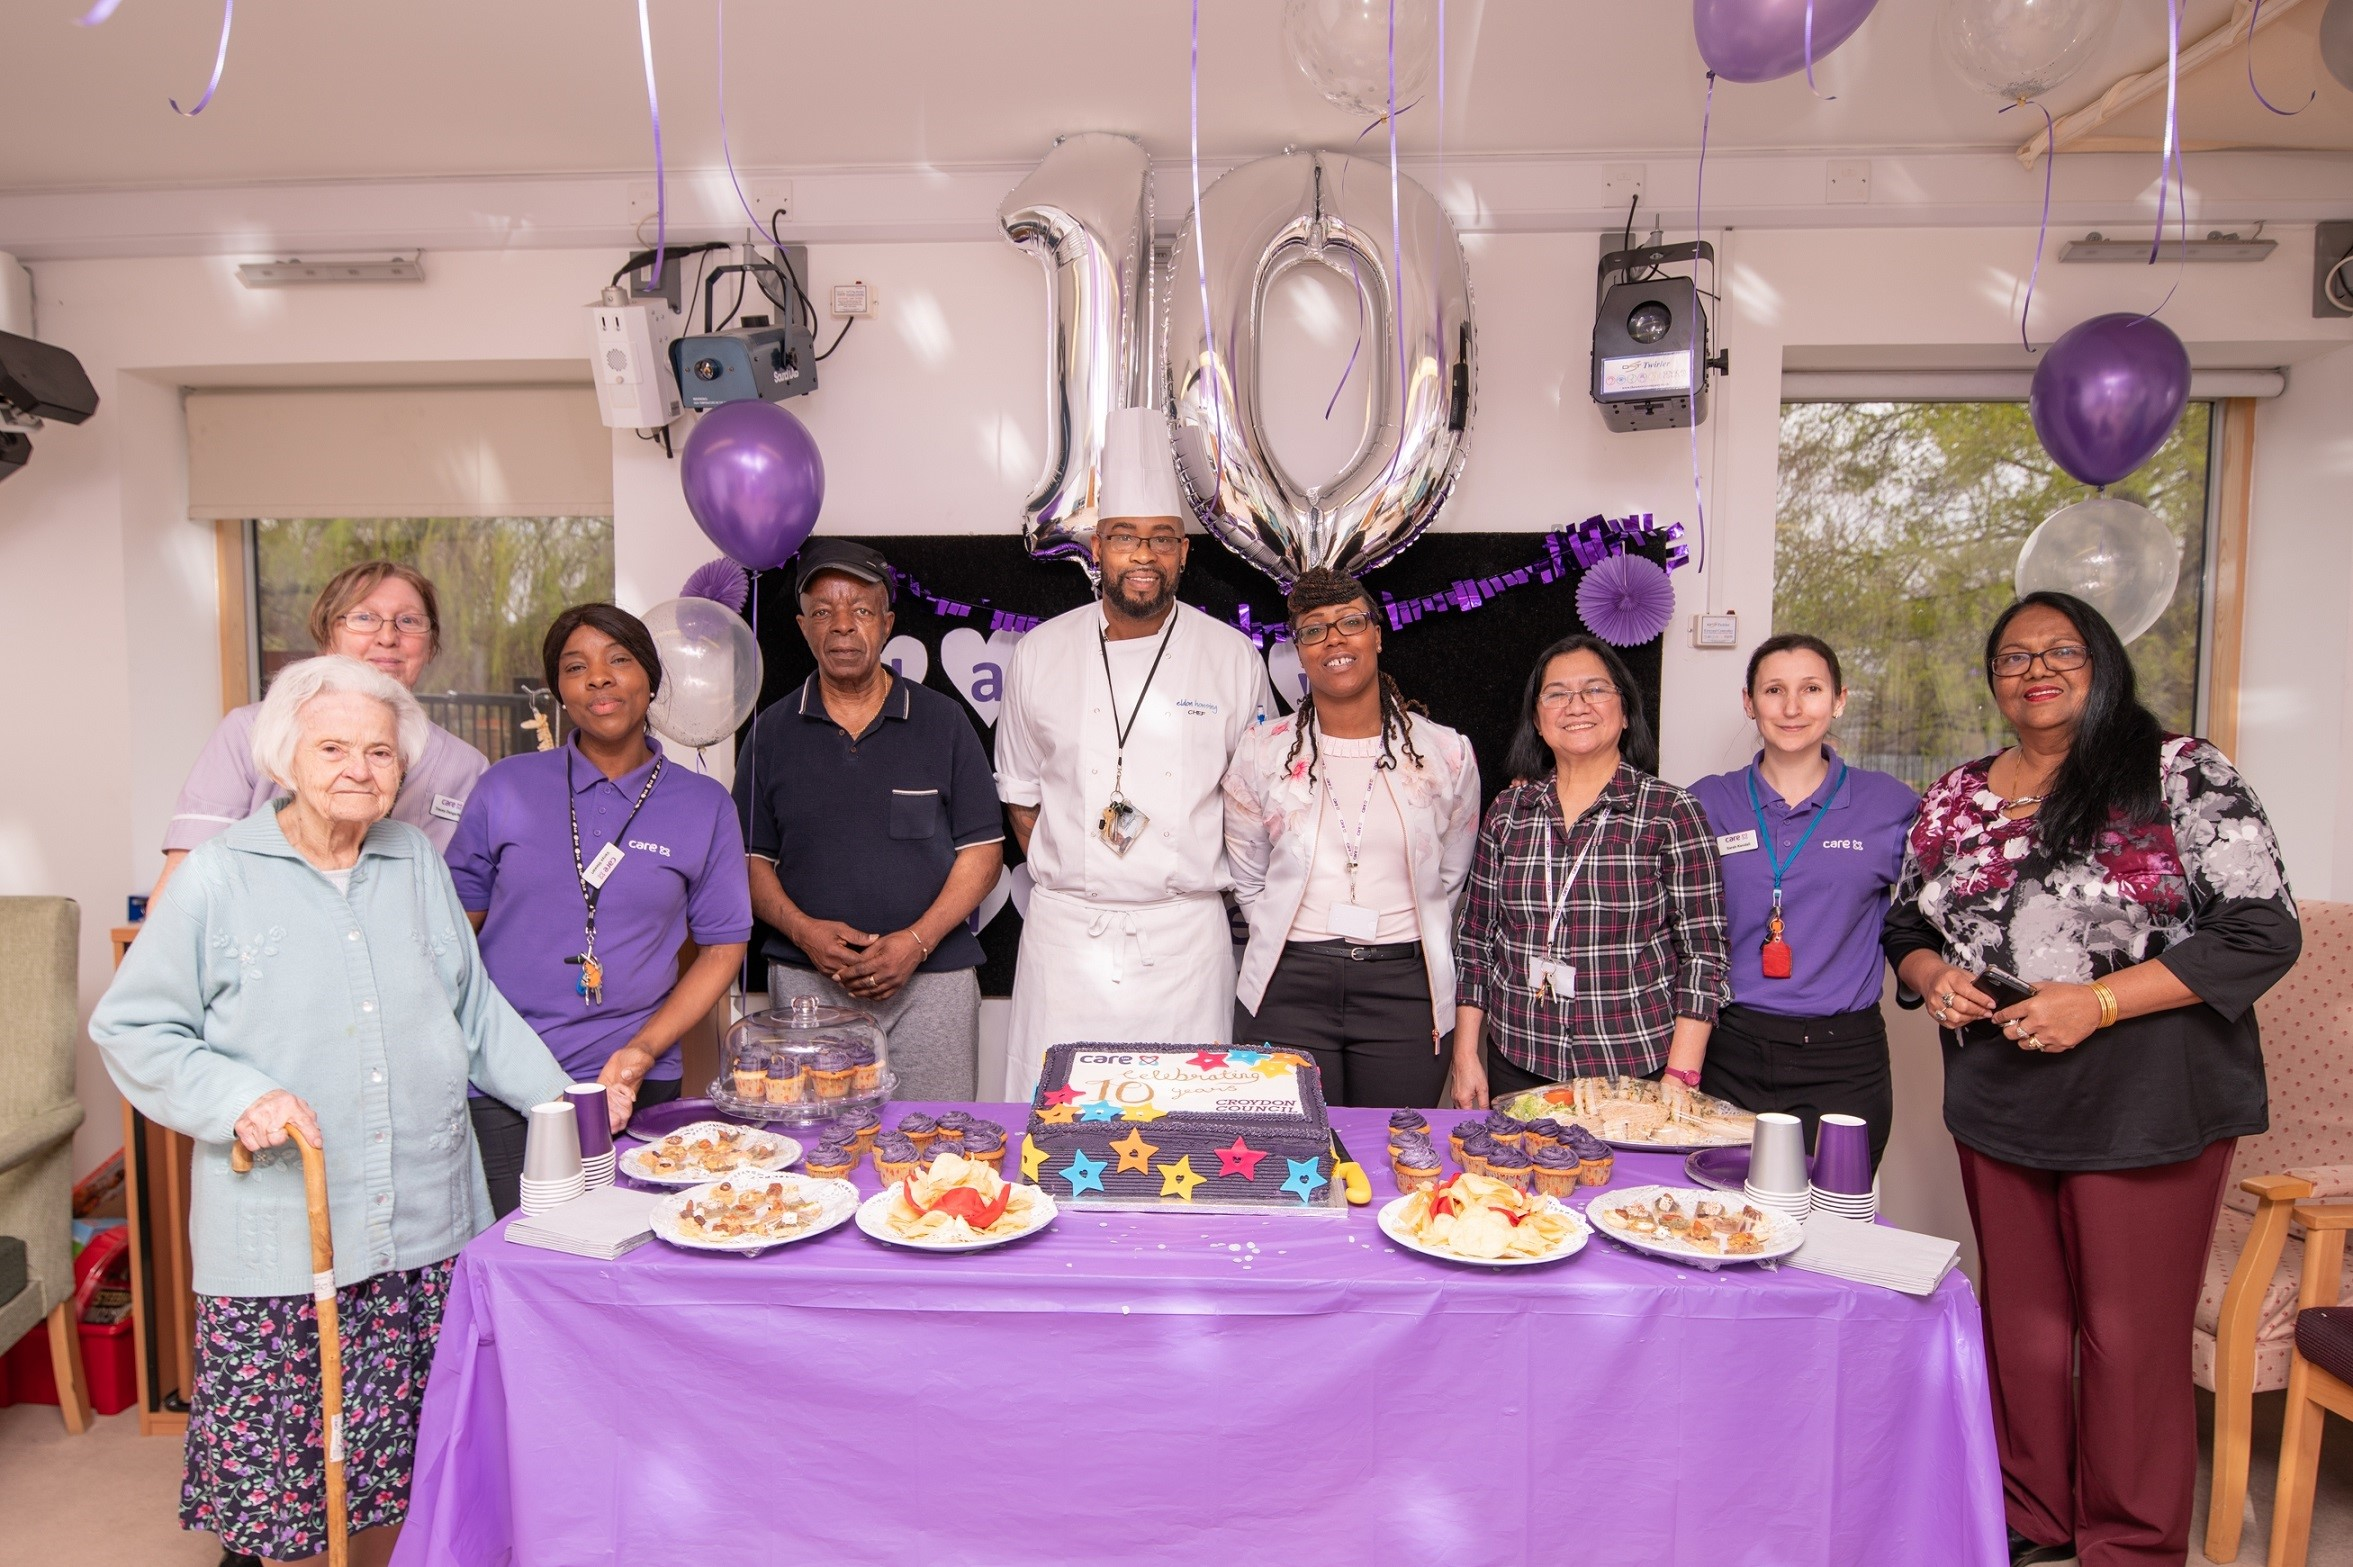 Croydon care home celebrates a decade of memories